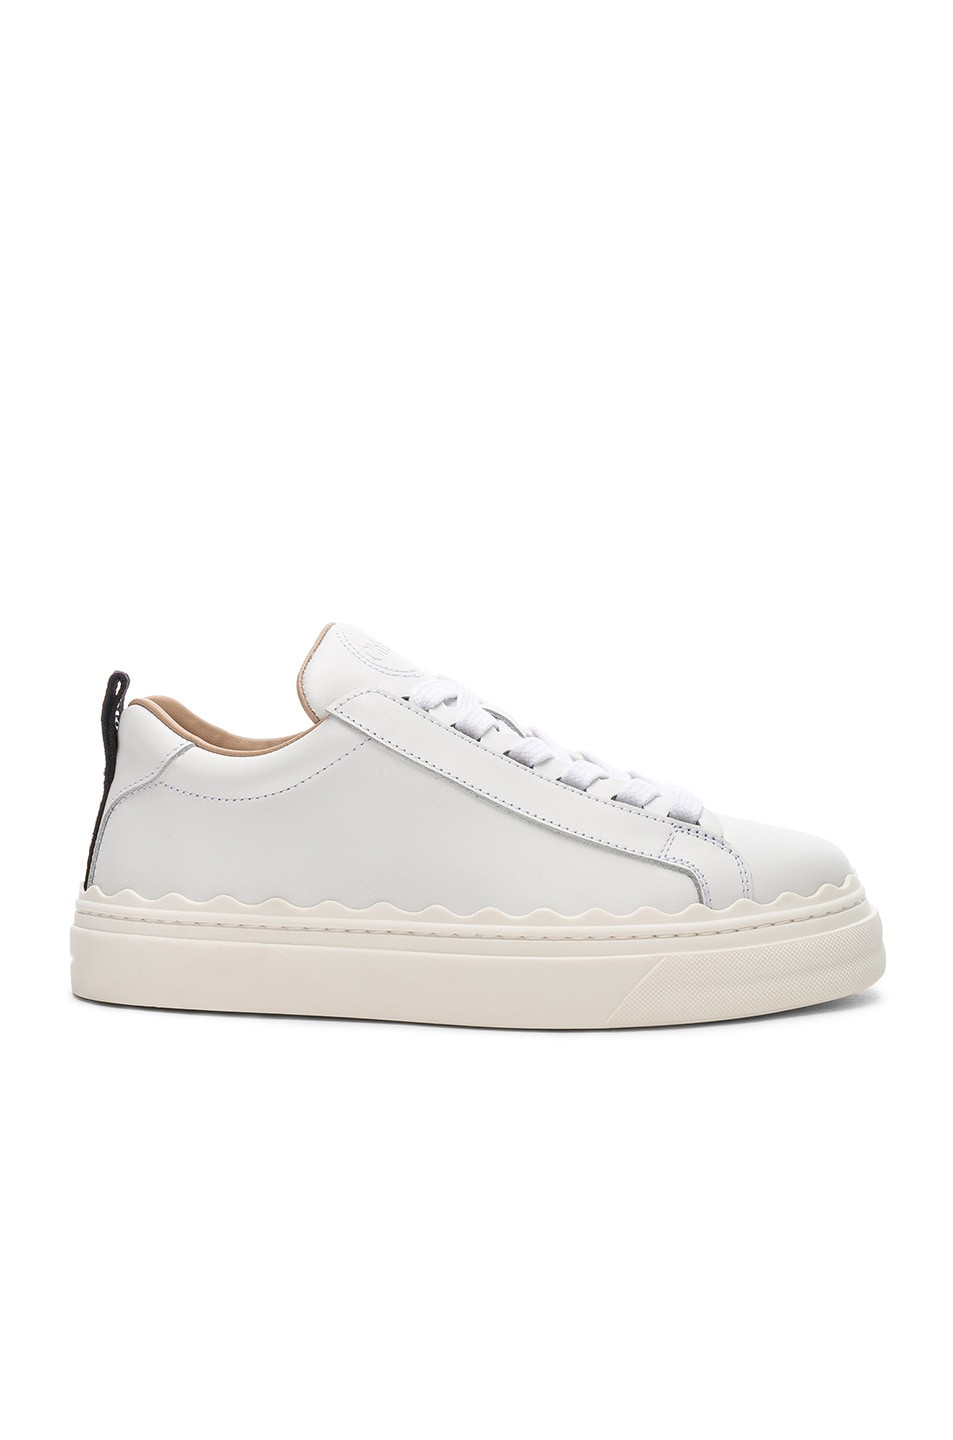 Image 1 of Chloe Low Top Sneakers in White